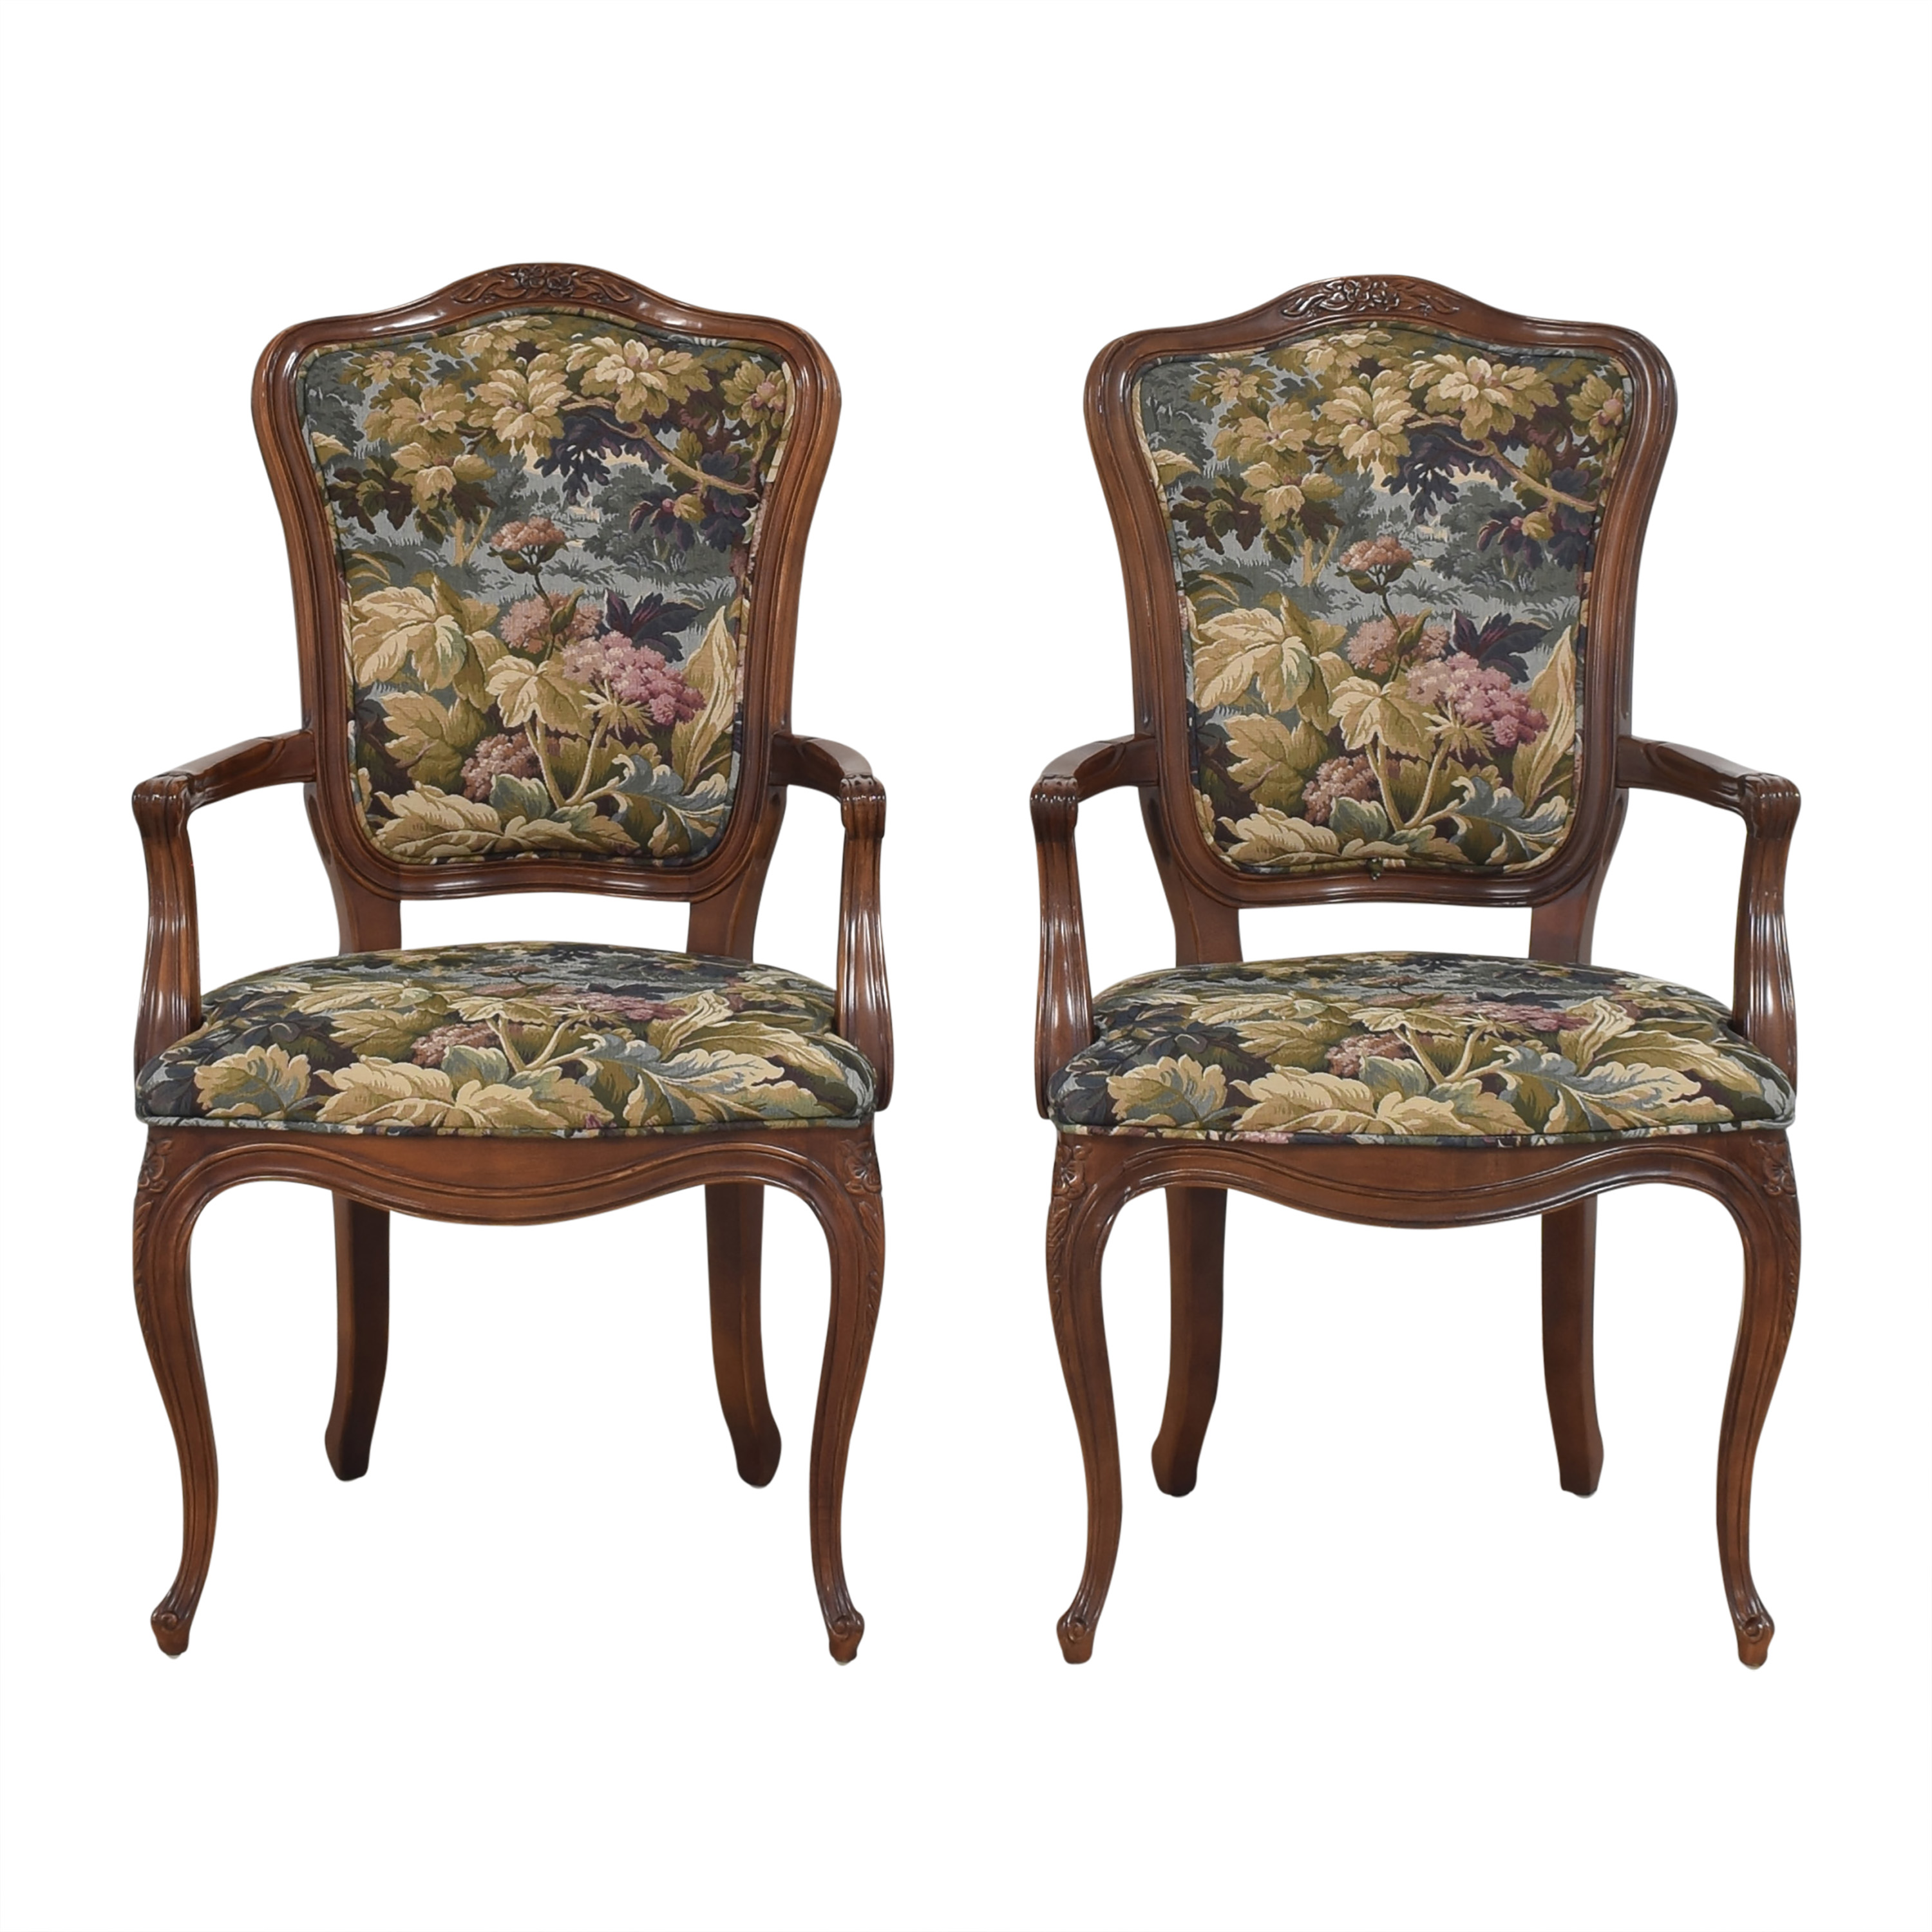 Henredon Furniture Henredon Versailles Collection Dining Arm Chairs for sale